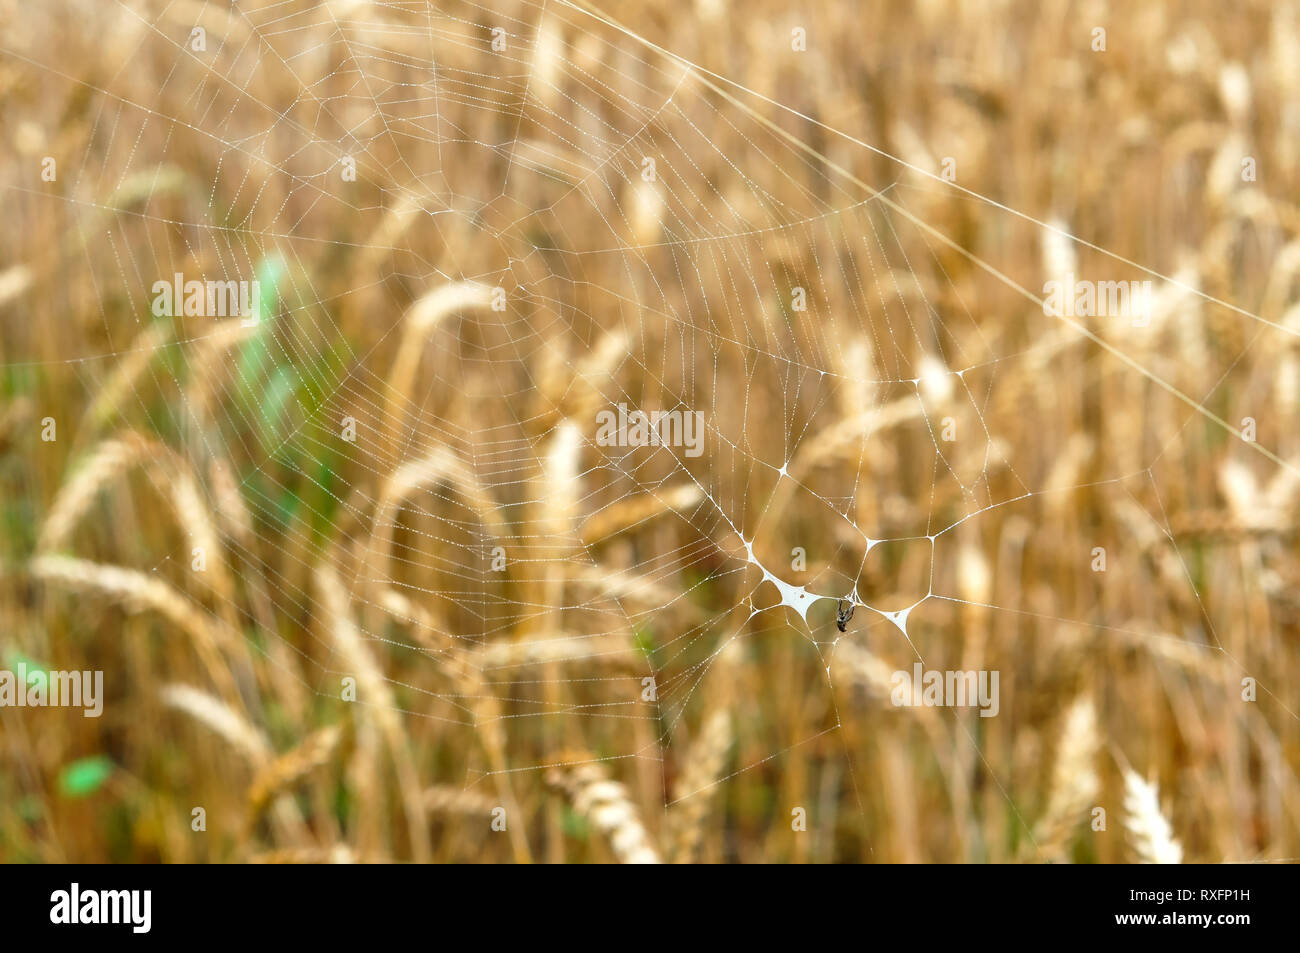 spider web with a small spider, spider web on the background of ears - Stock Image